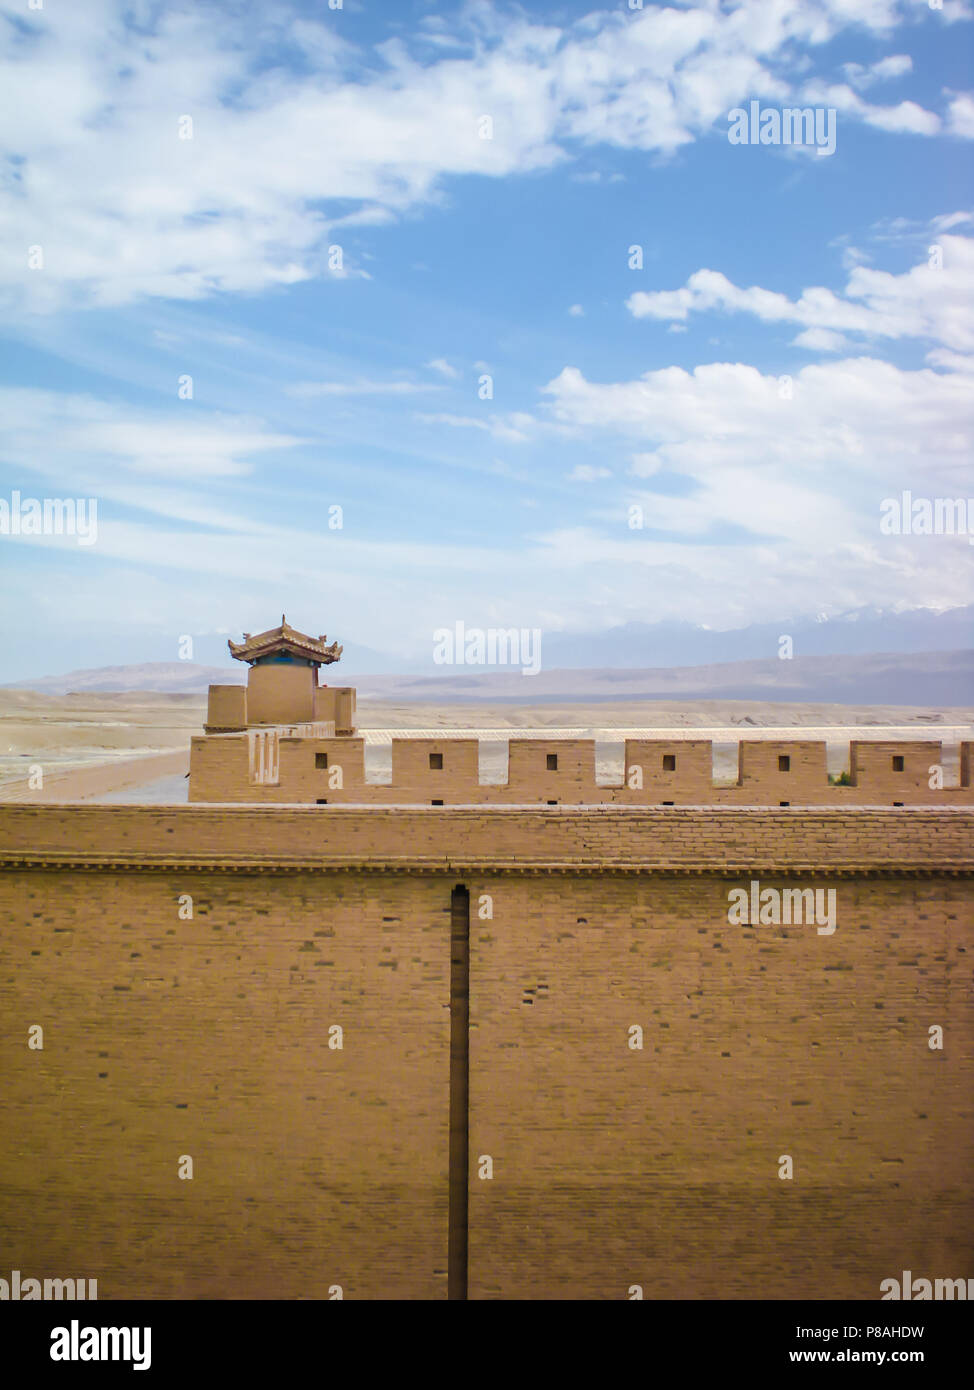 Small watchtower at the end of the Chinese great wall in Jiayuguan, China - Stock Image